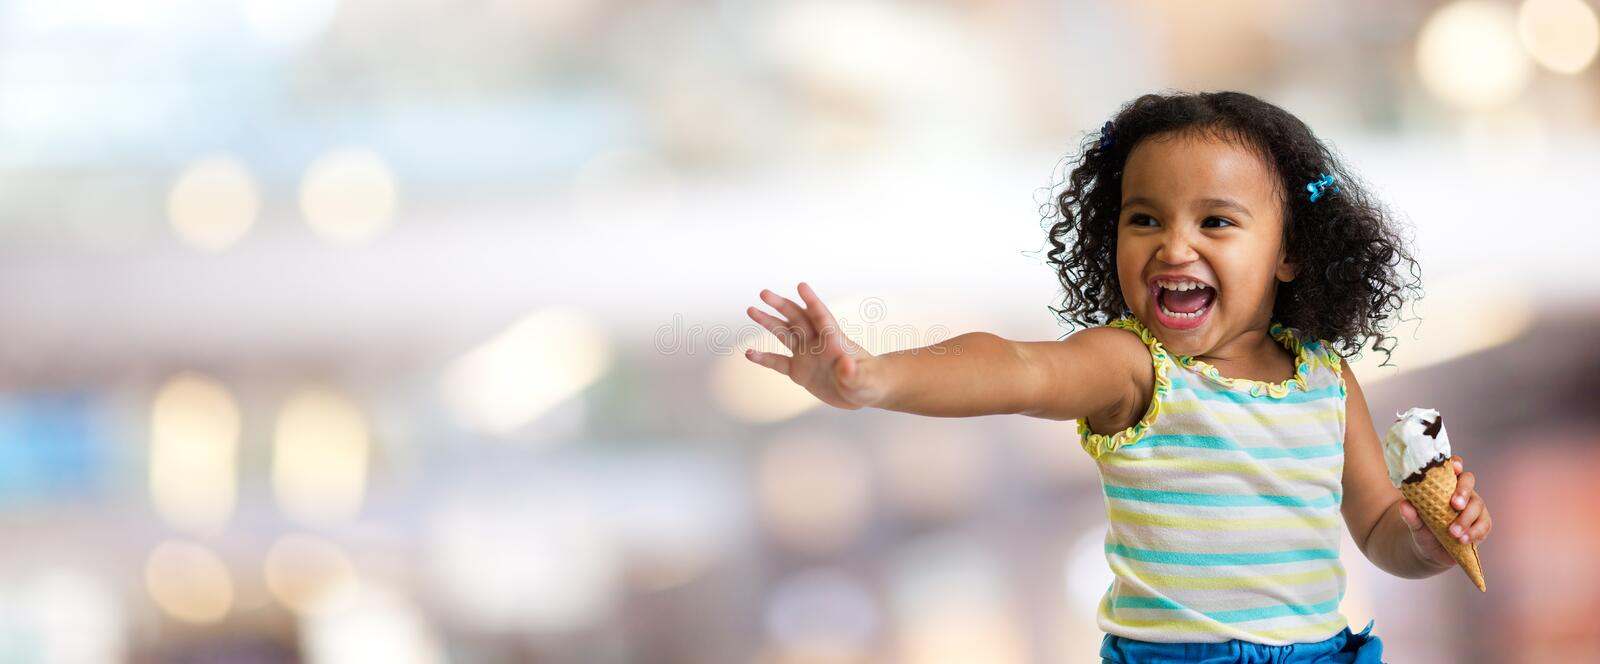 Happy kid with ice cream on blurred abstract background royalty free stock image